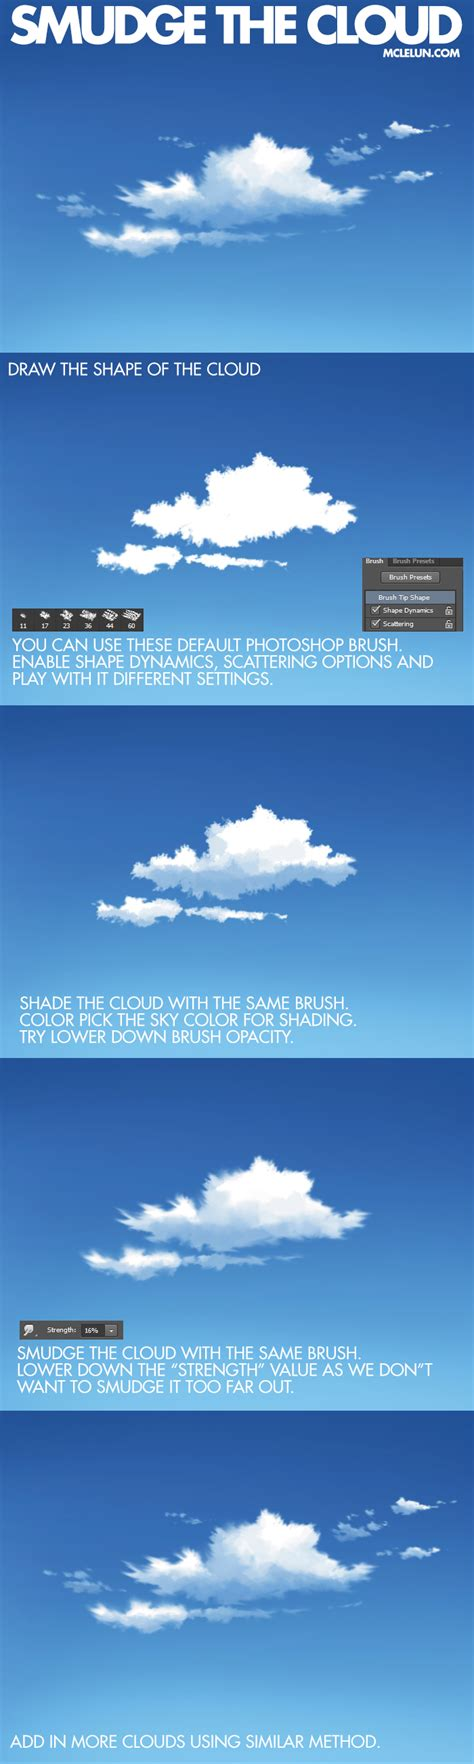 tutorial smudge digital painting smudge the cloud by mclelun on deviantart